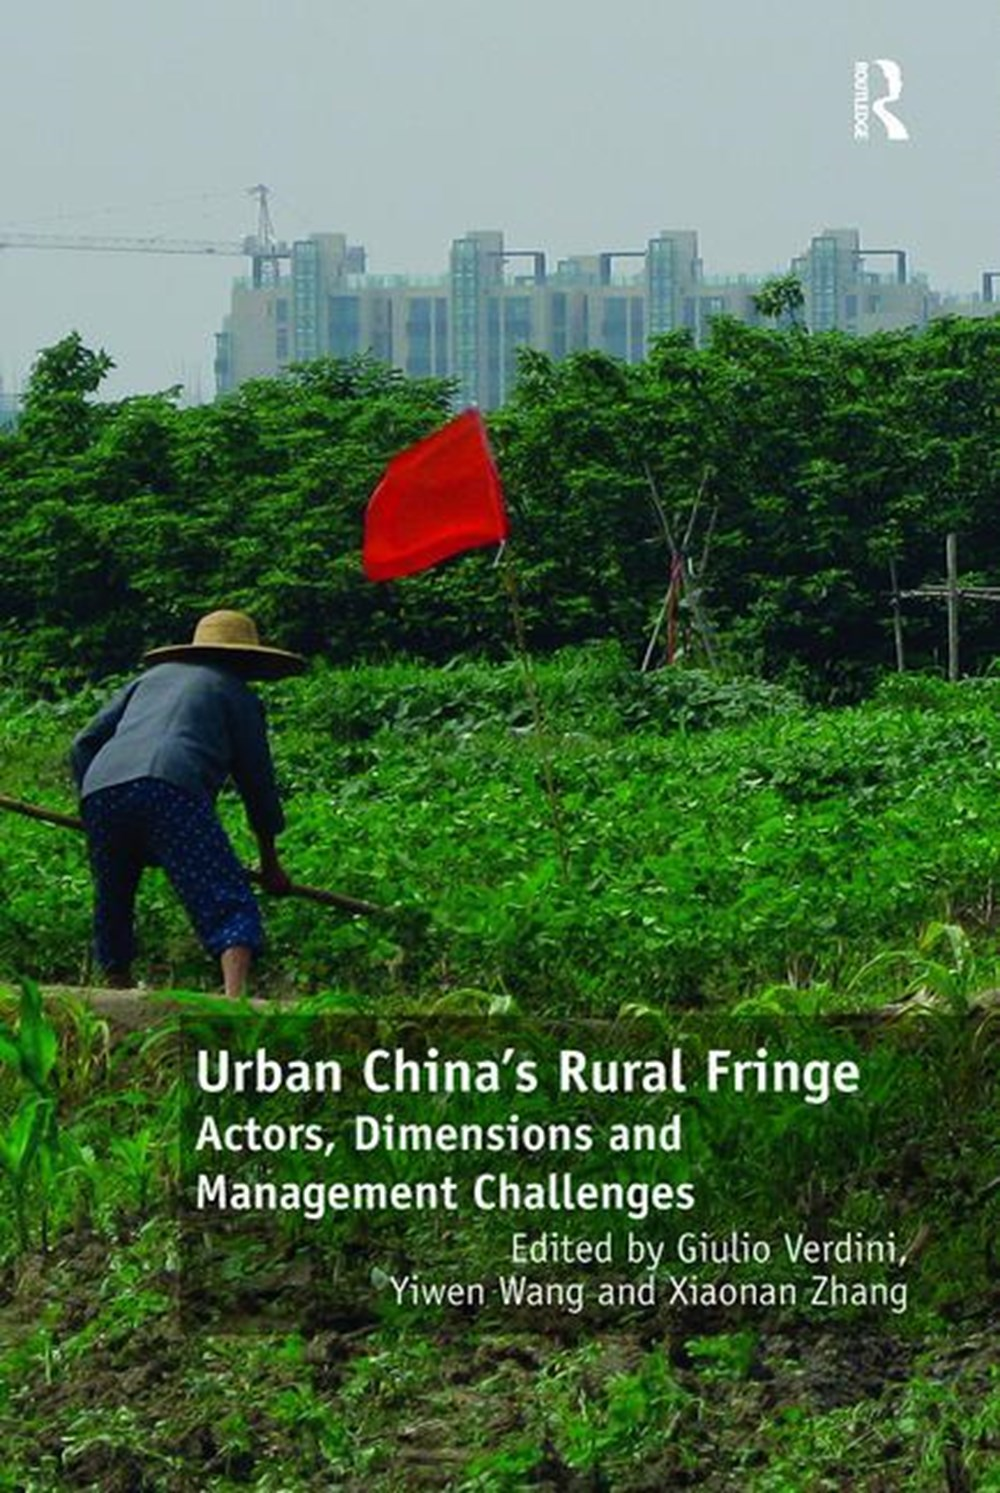 Urban China's Rural Fringe Actors, Dimensions and Management Challenges